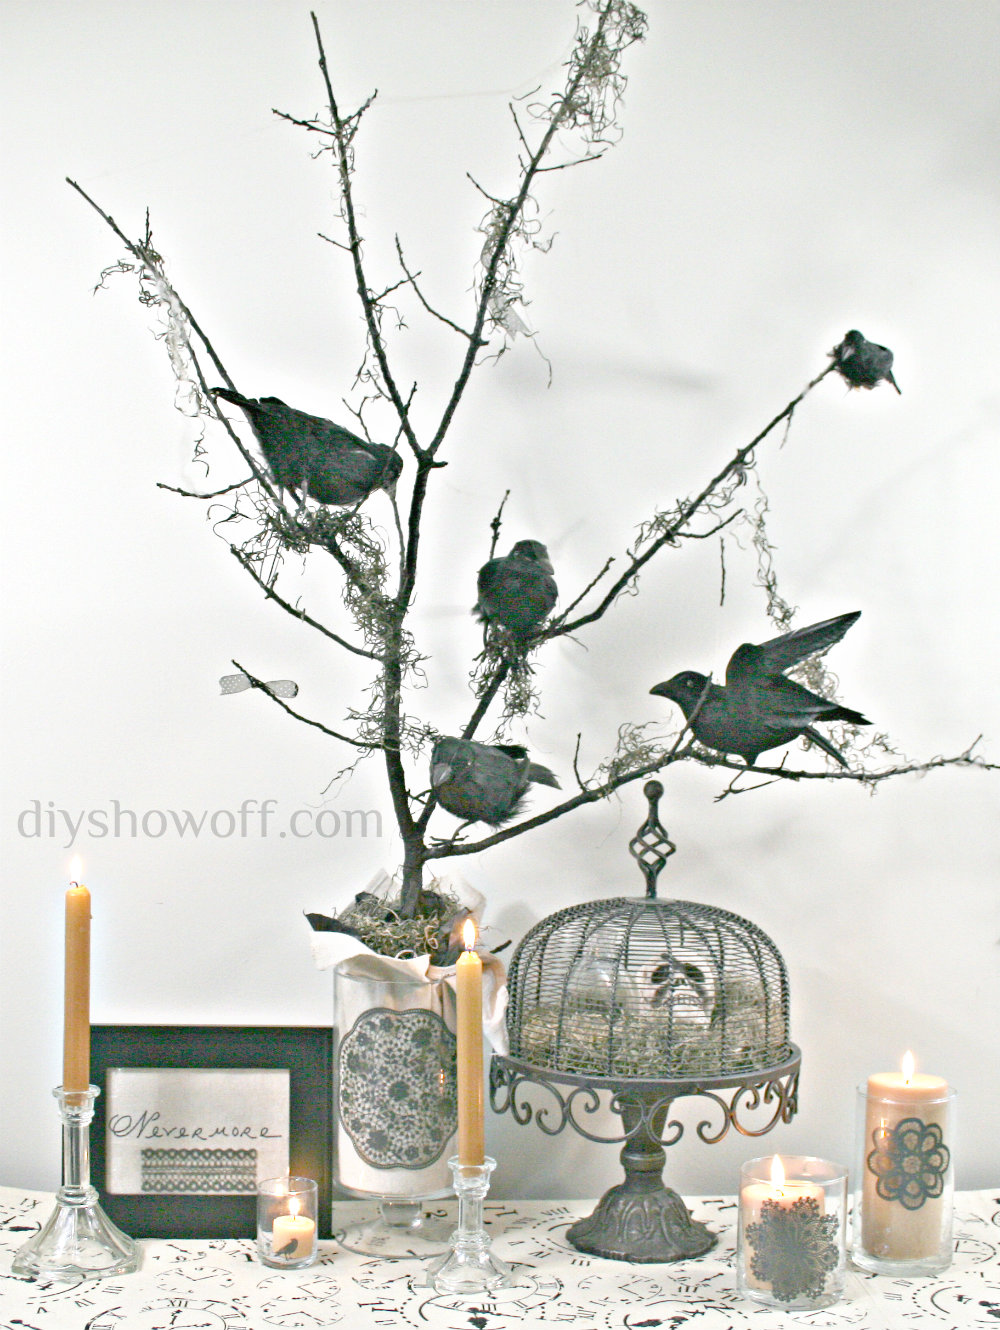 DIY Halloween Nevermore Tree decorDIY Show Off ™ – DIY ...